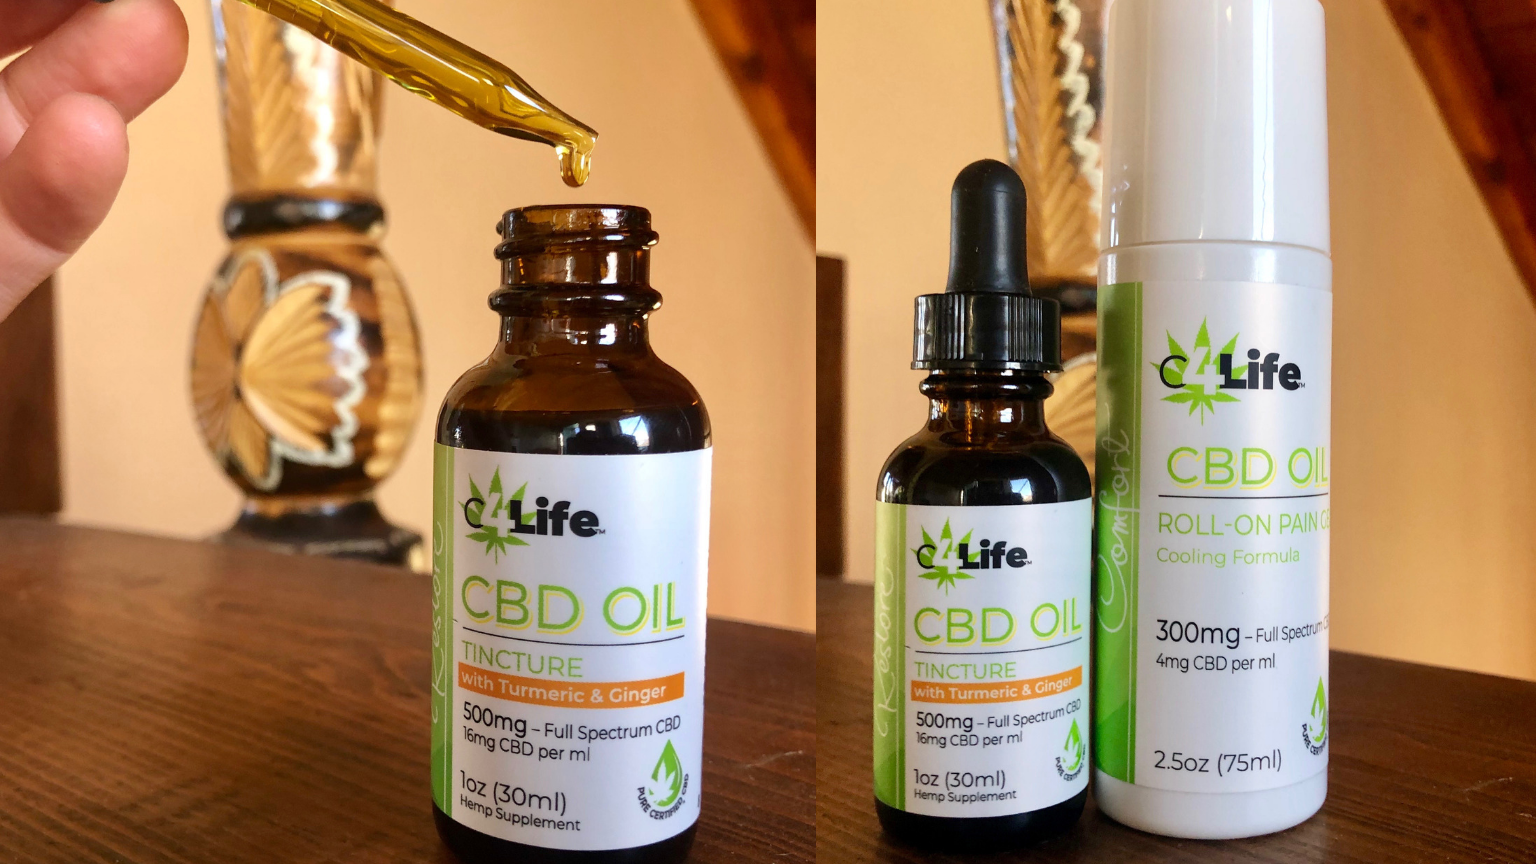 c4life-cbd-oil-and-topicals